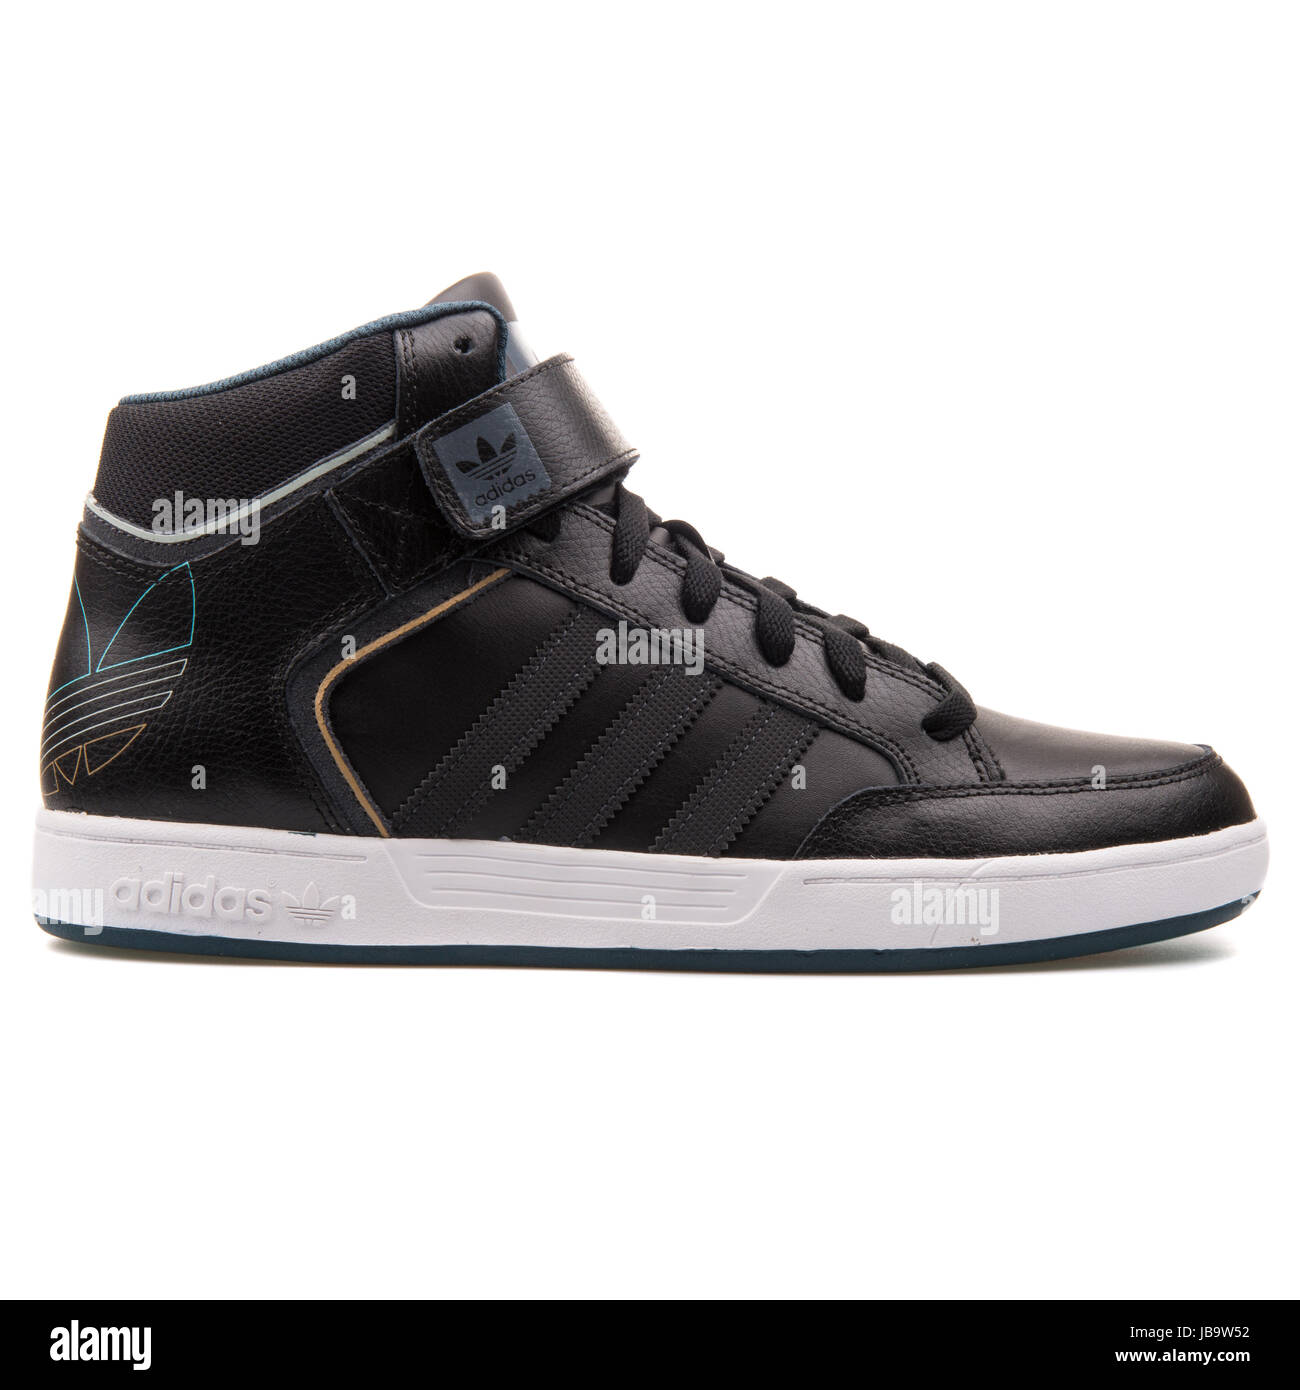 hot sale online 121fd 291c9 Adidas Varial Mid Black Leather Mens Basketball Shoes - D68664